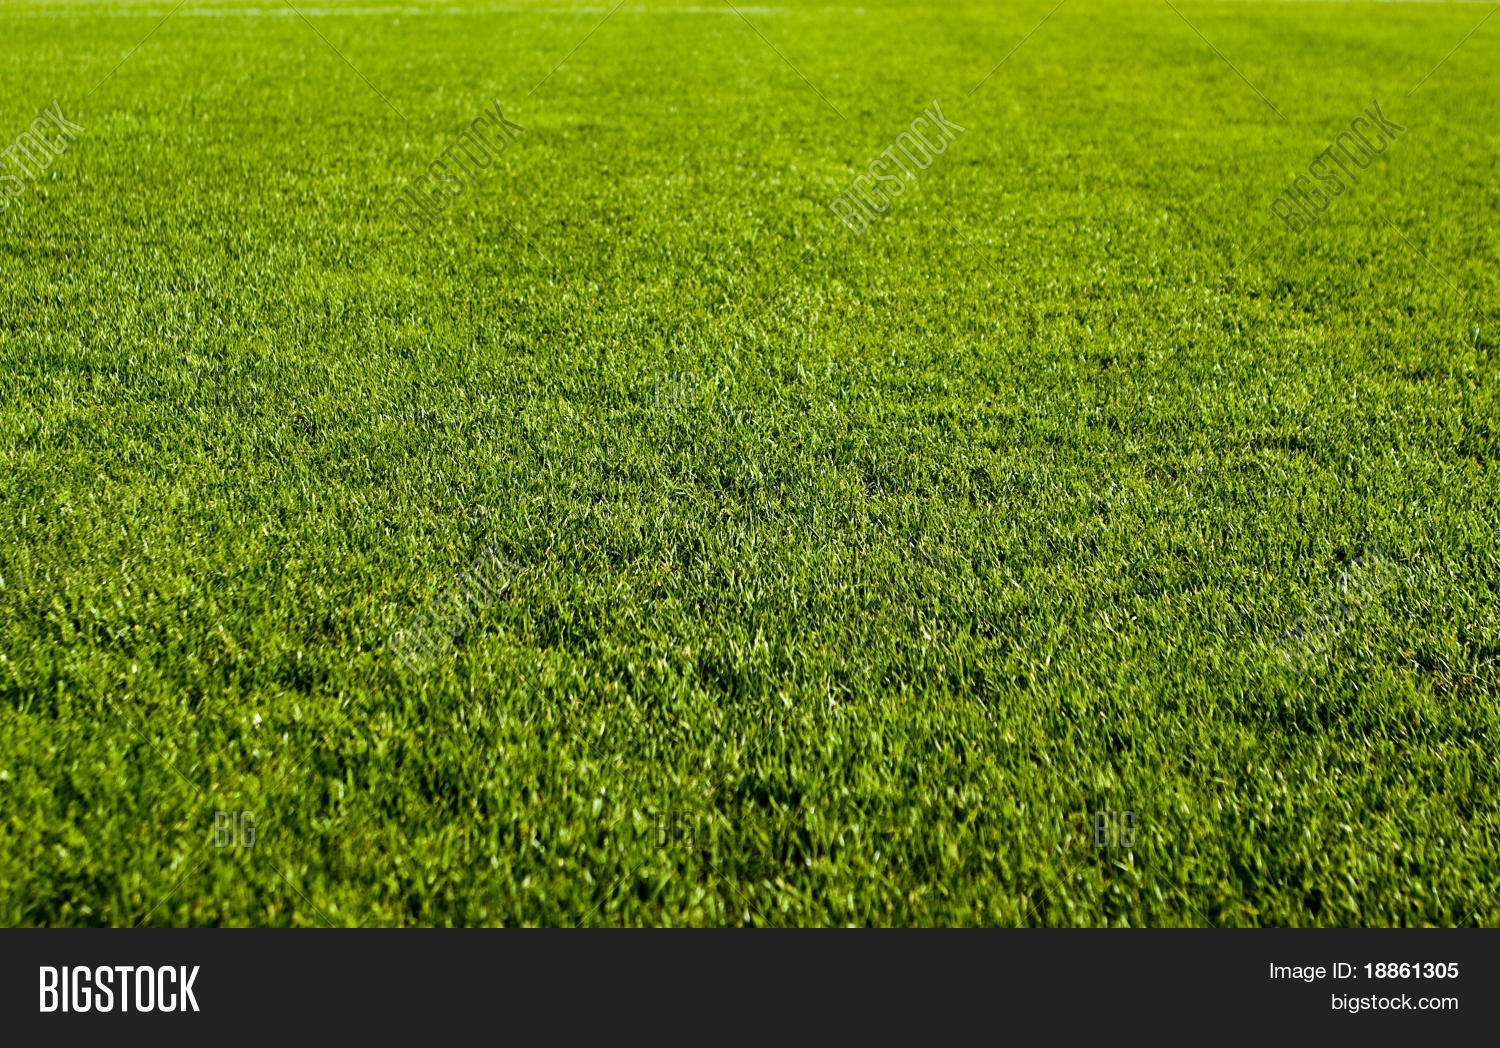 Form And Texture : Nice green grass texture form image photo bigstock